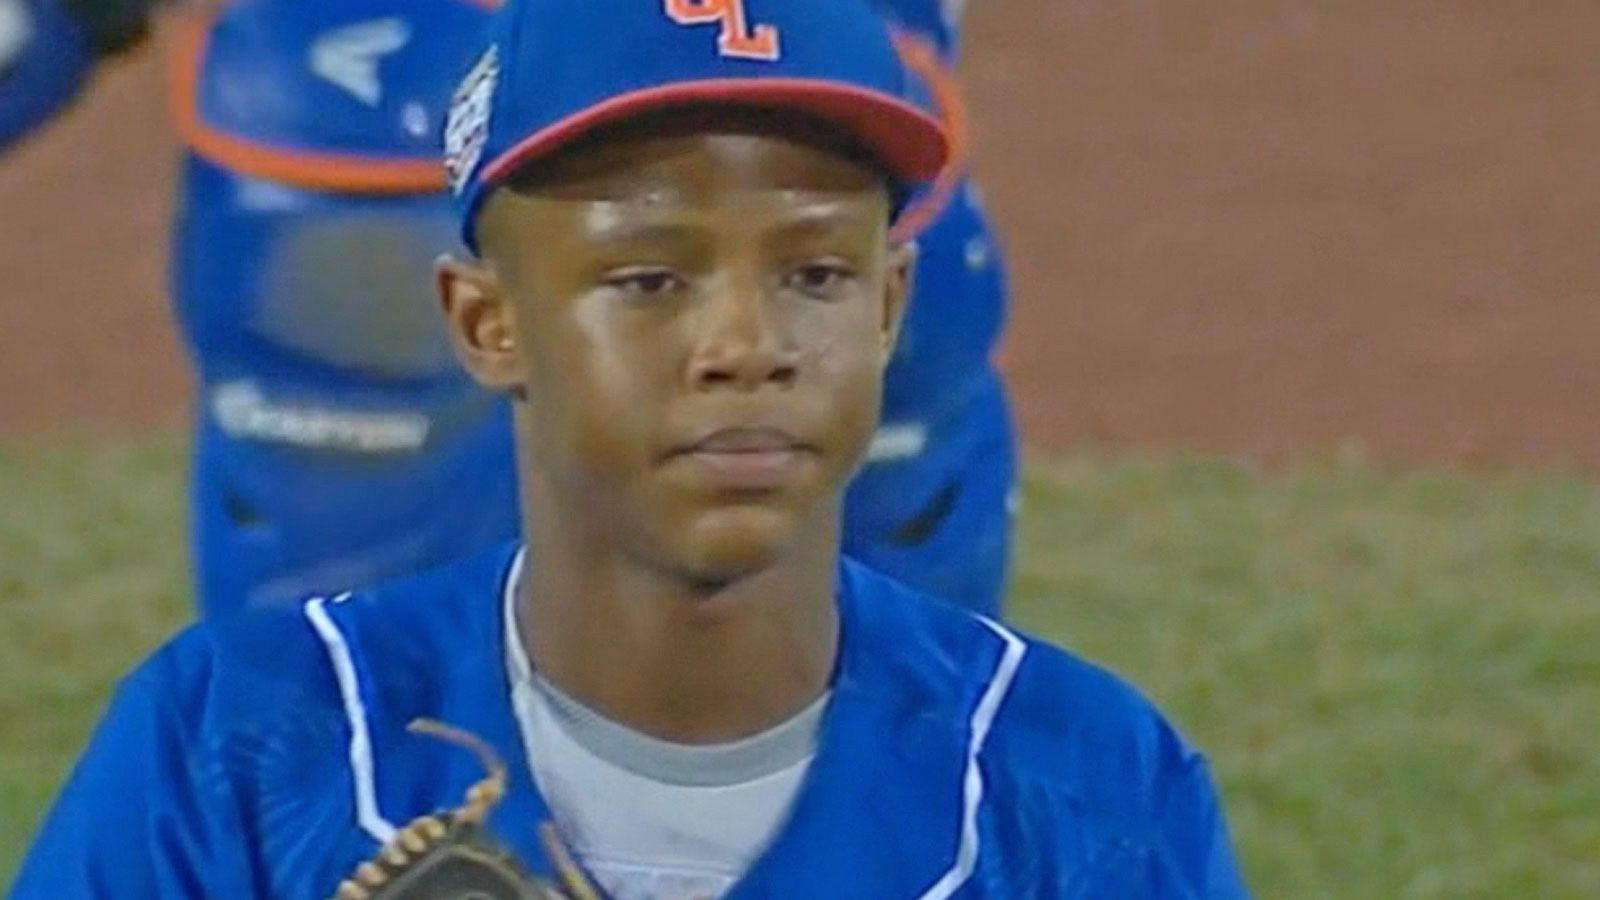 VIDEO: Little League World Series Reaches Final Four